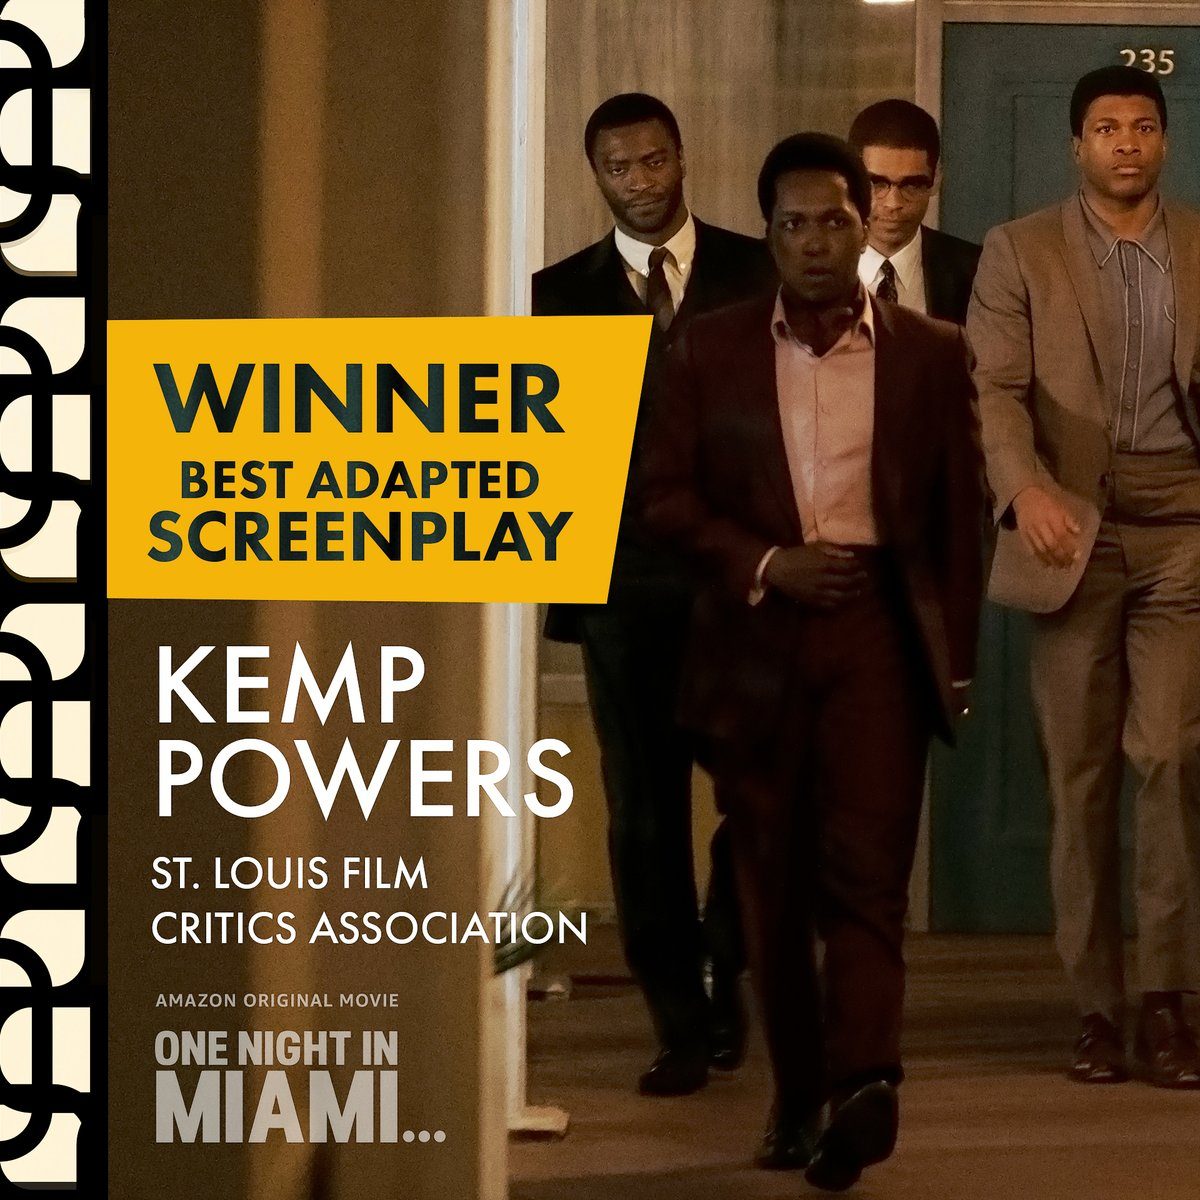 Woohoo!! Kemp Powers, the playwright/screenwriter behind #OneNightInMiami received the Best Adapted Screenplay Award from the St. Louis Film Critics Association! 🏅